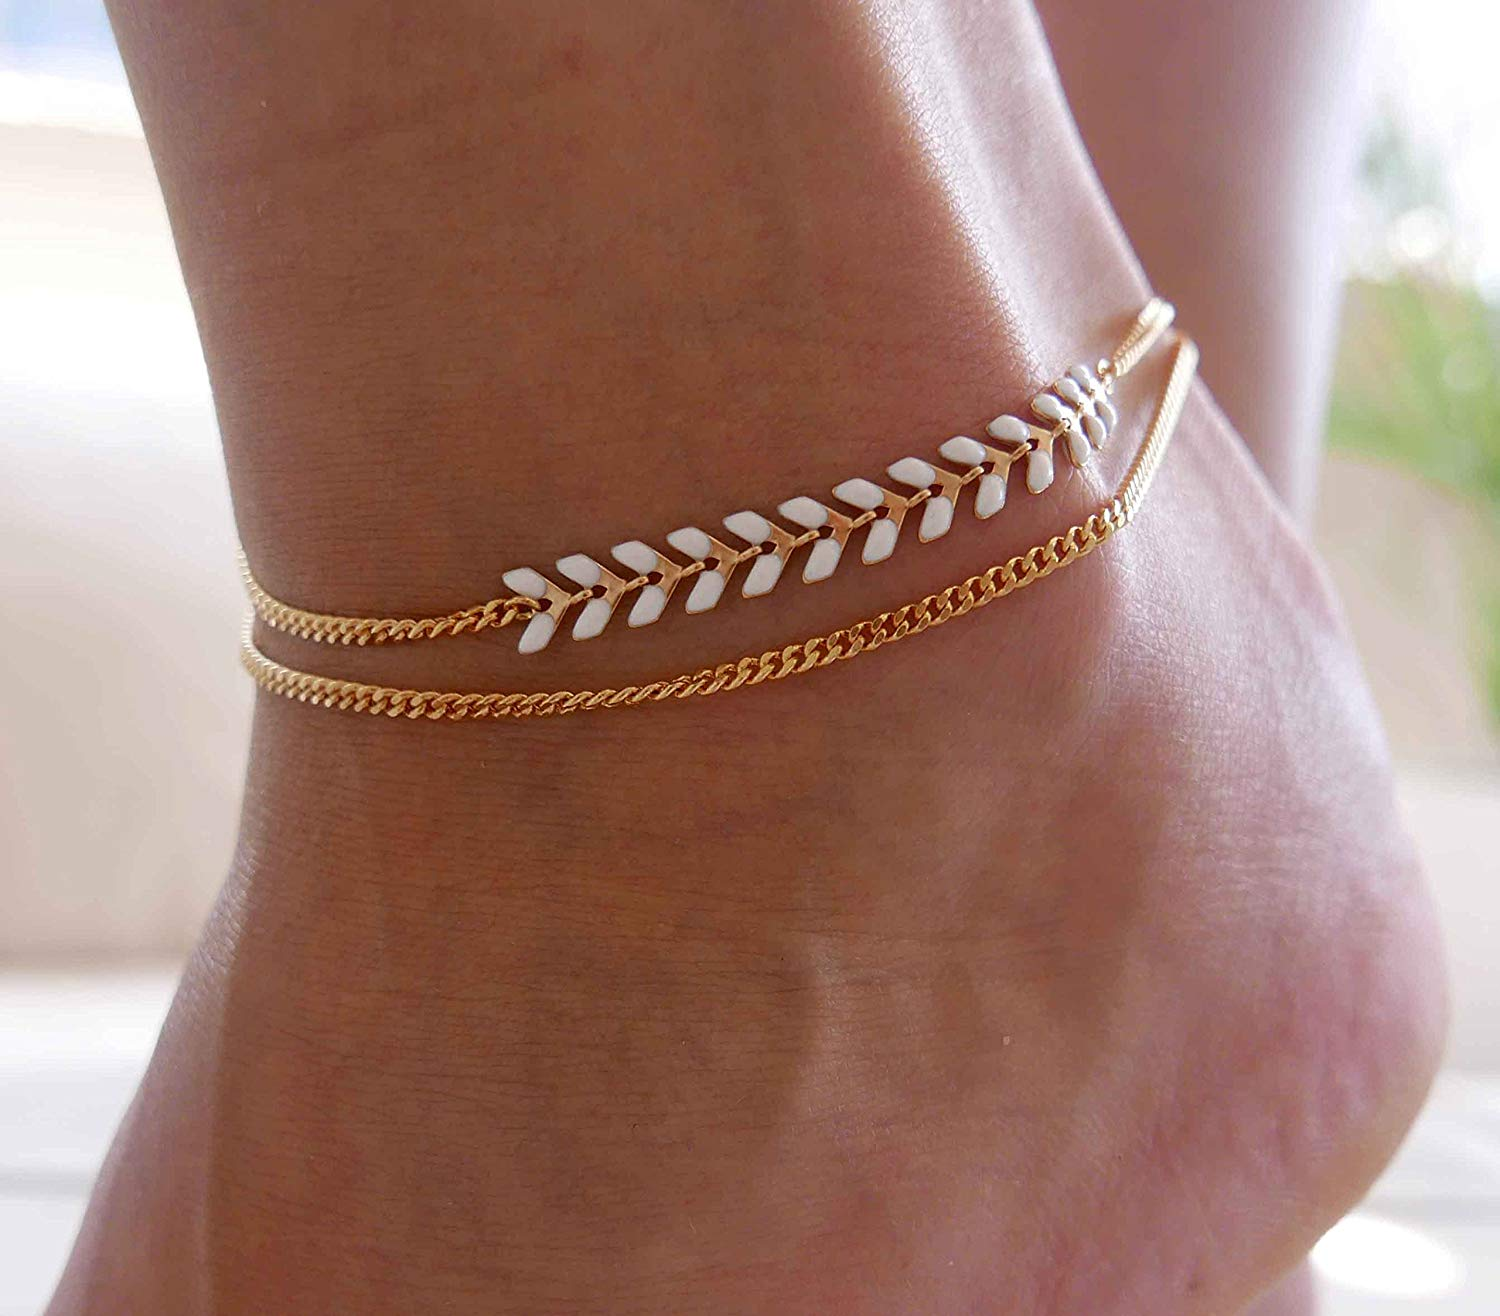 Handmade Gold Anklet For Women Set With White Arrow Chain By Galis Jewelry - Gold Ankle Bracelet For Women - Arrow Anklet - Arrow Ankle Bracelet